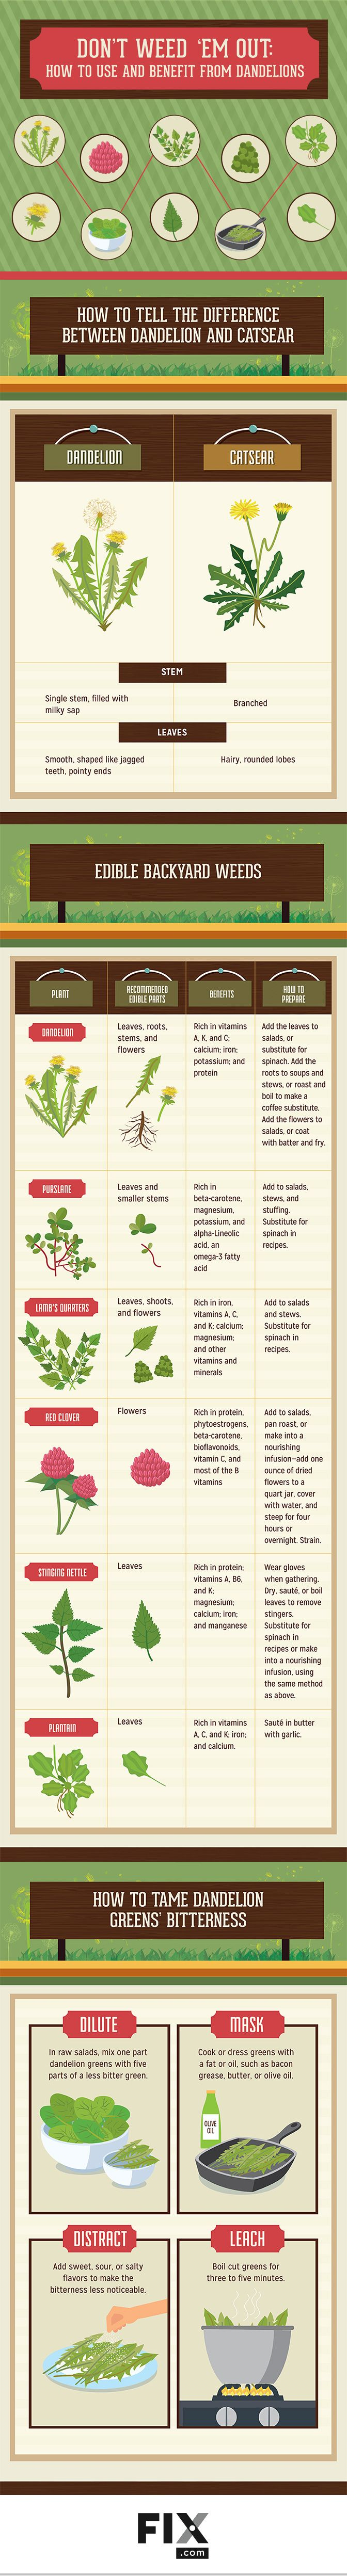 "I've made quite a few dandelion recipes. This versatile ""weed"" is delicious and nutritious from root to flower! Check out this awesome dandelion infographic, too."